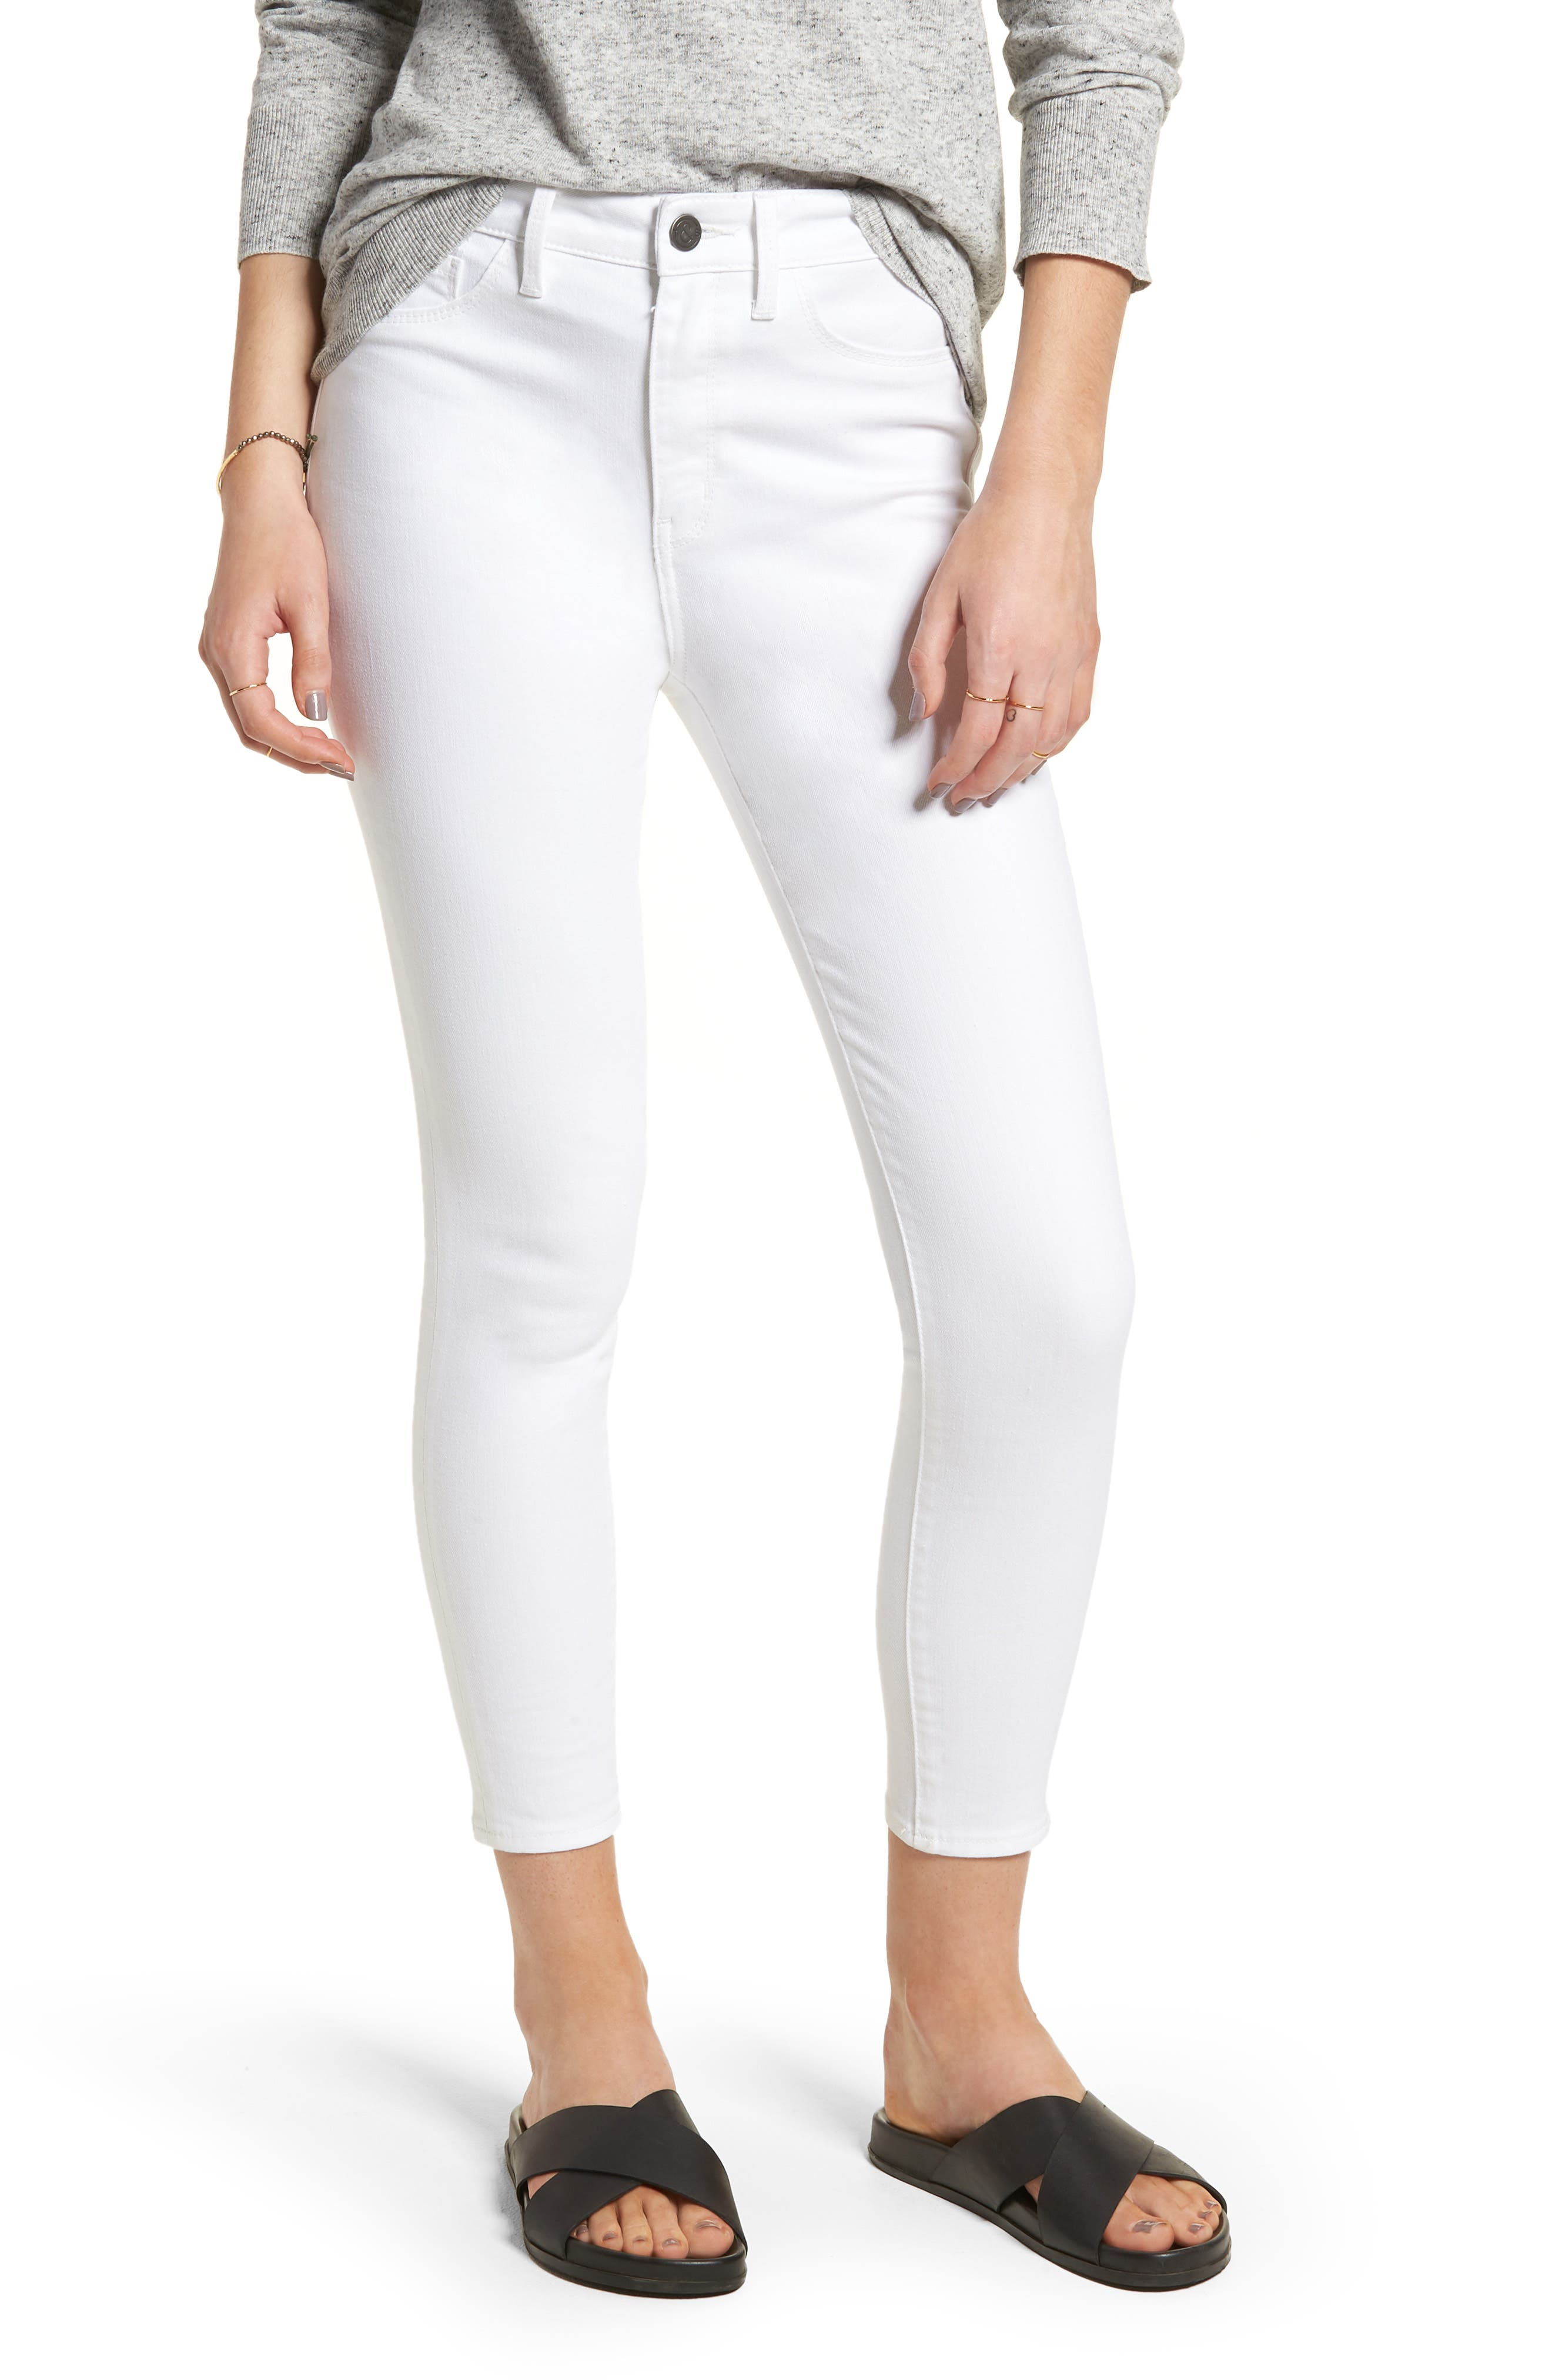 Charity High Waist Crop Skinny Jeans,                         Main,                         color, 100